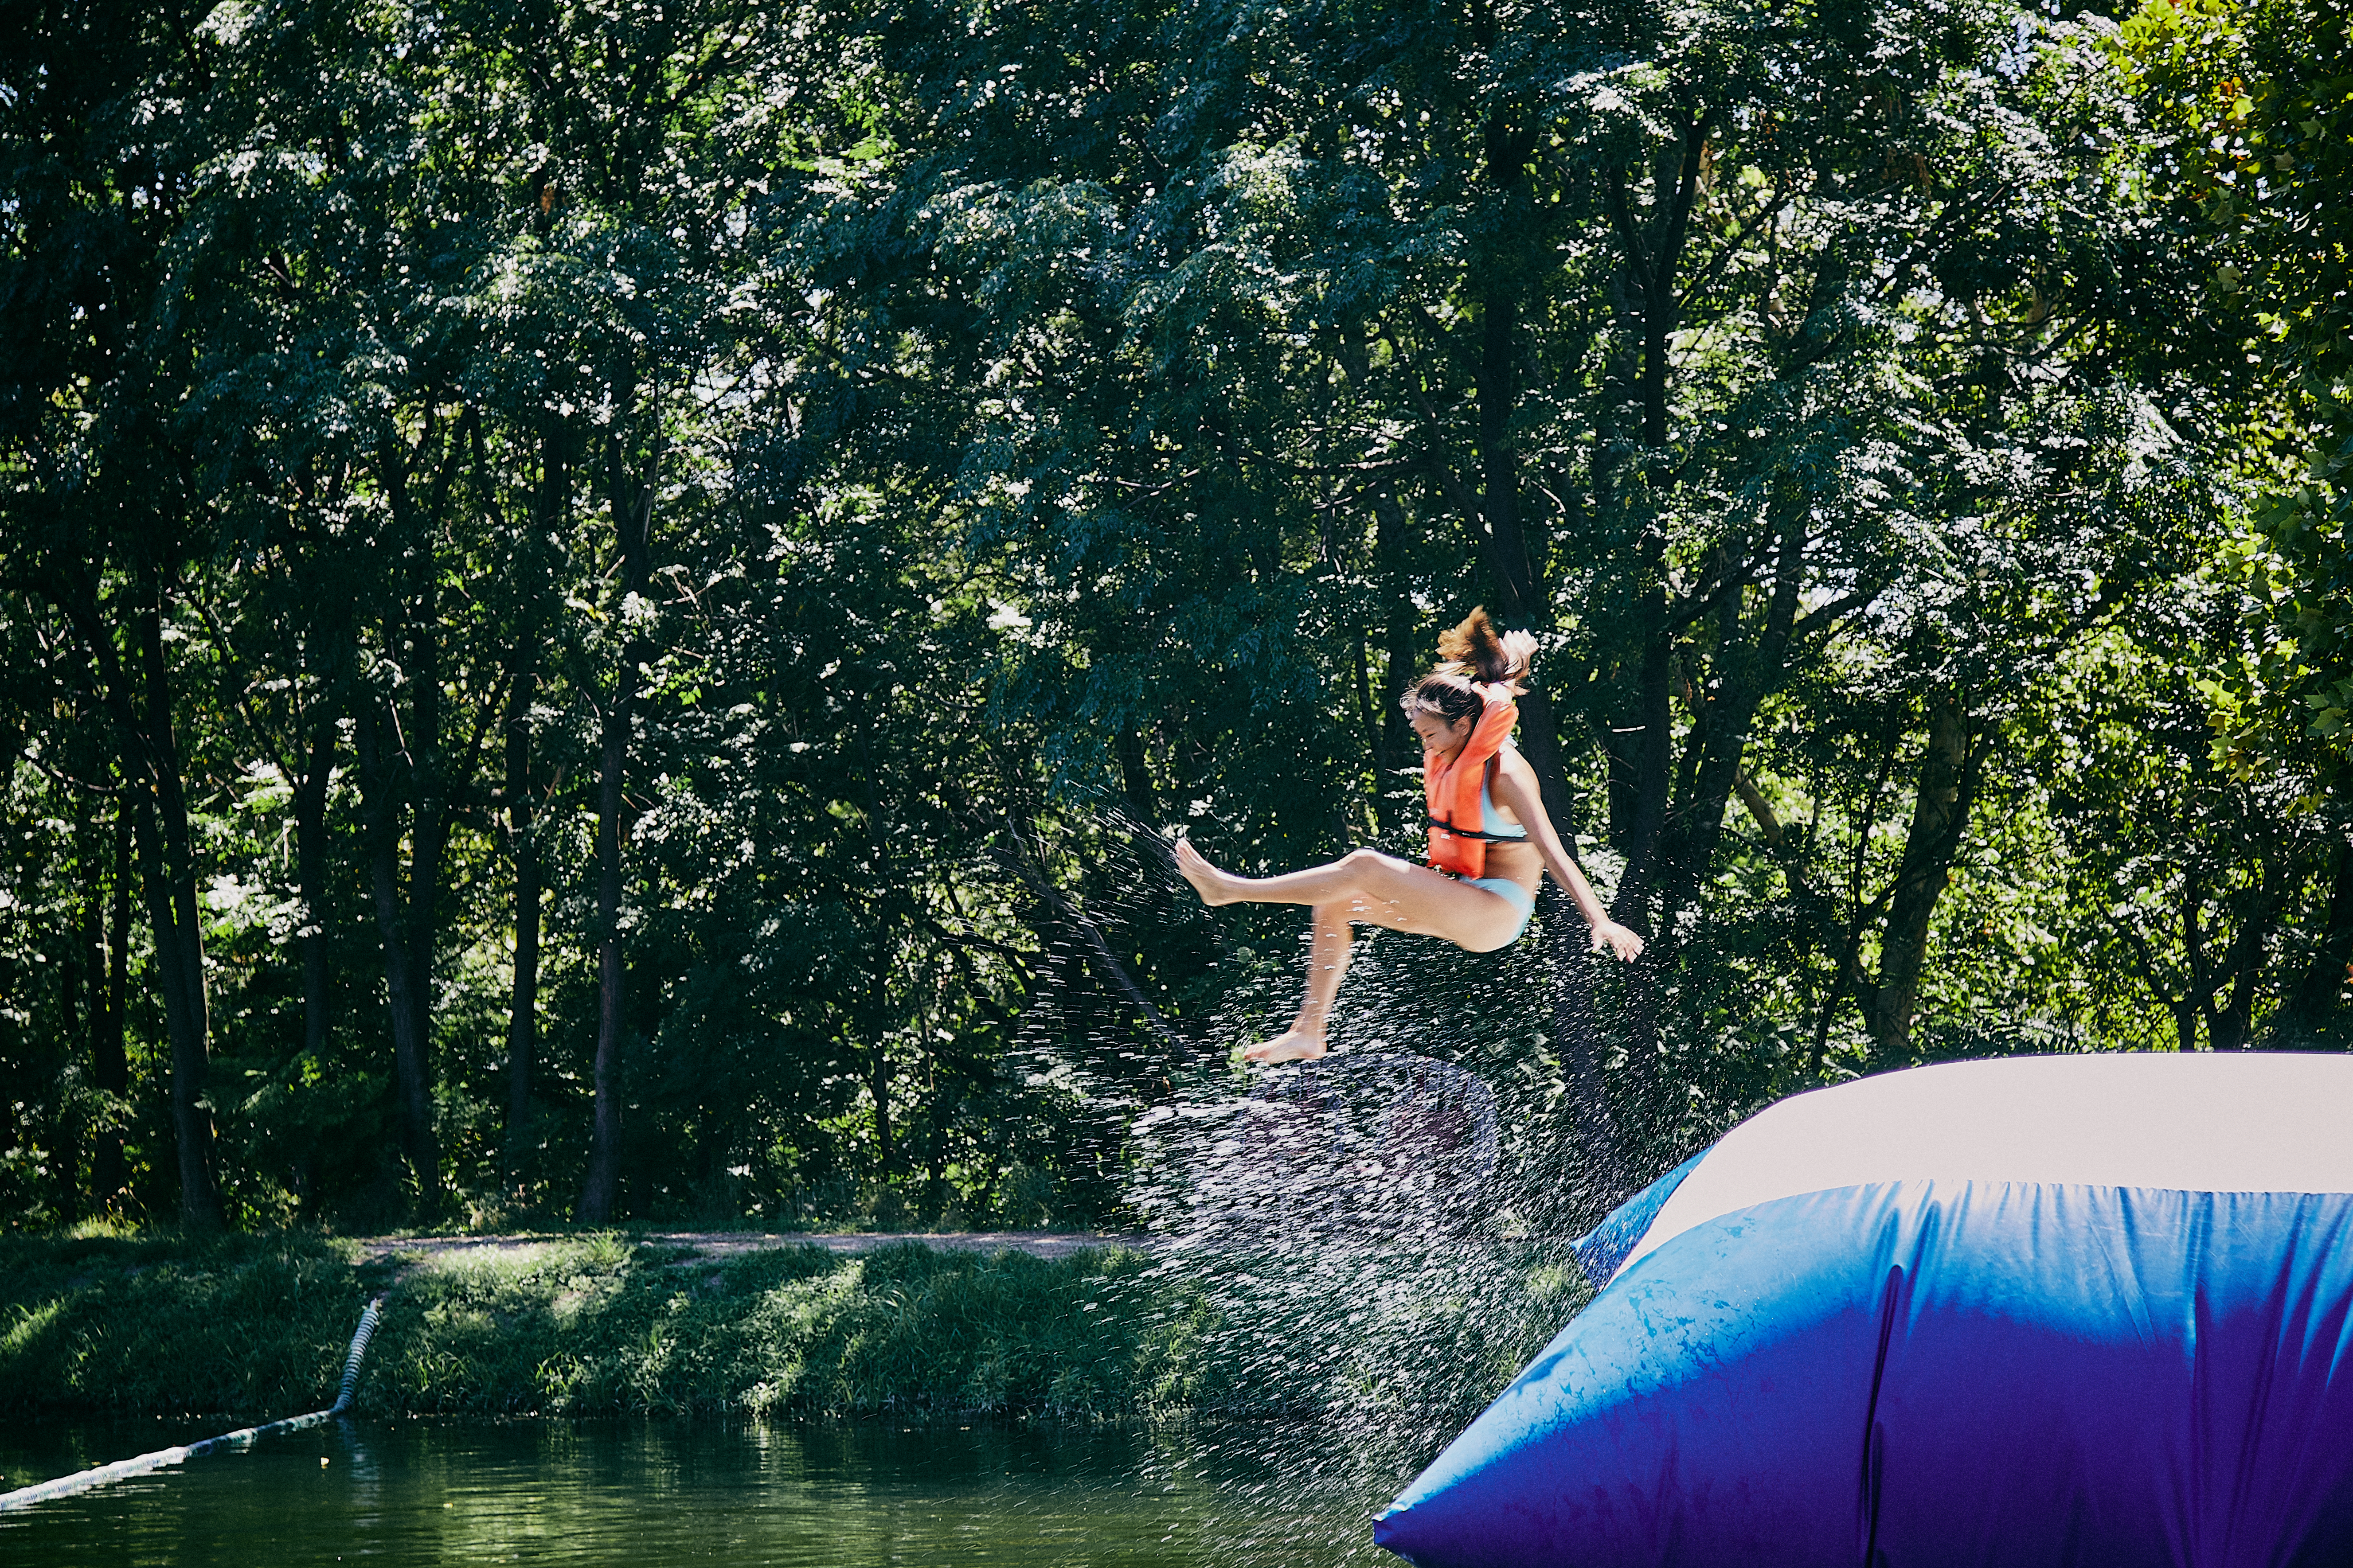 Camp Texas Camper Flying from a Water Blob